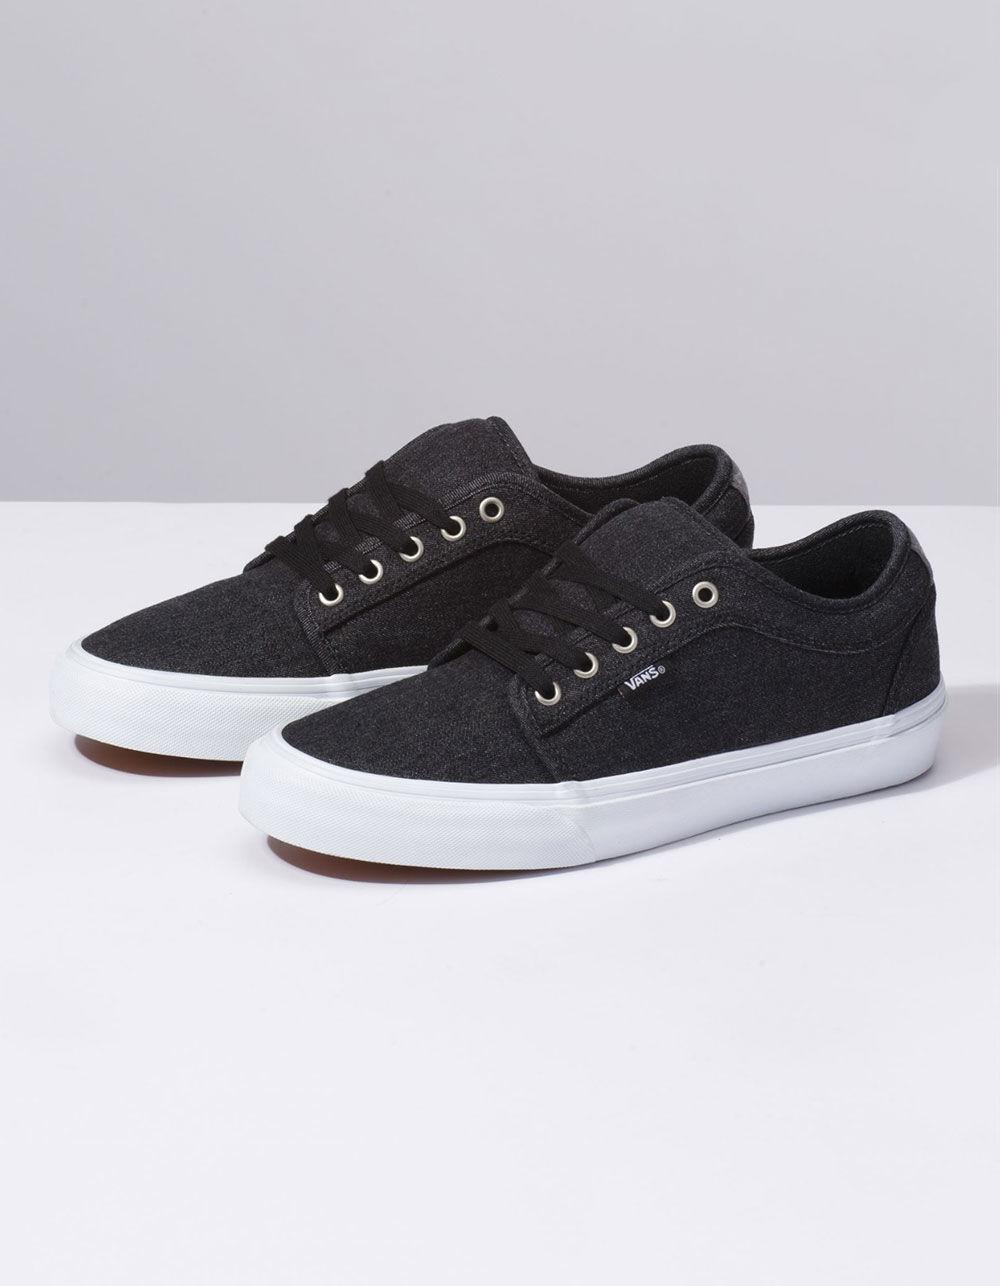 2a02deb23f Lyst - Vans Denim Chukka Low Black   Pewter Shoes in Black for Men